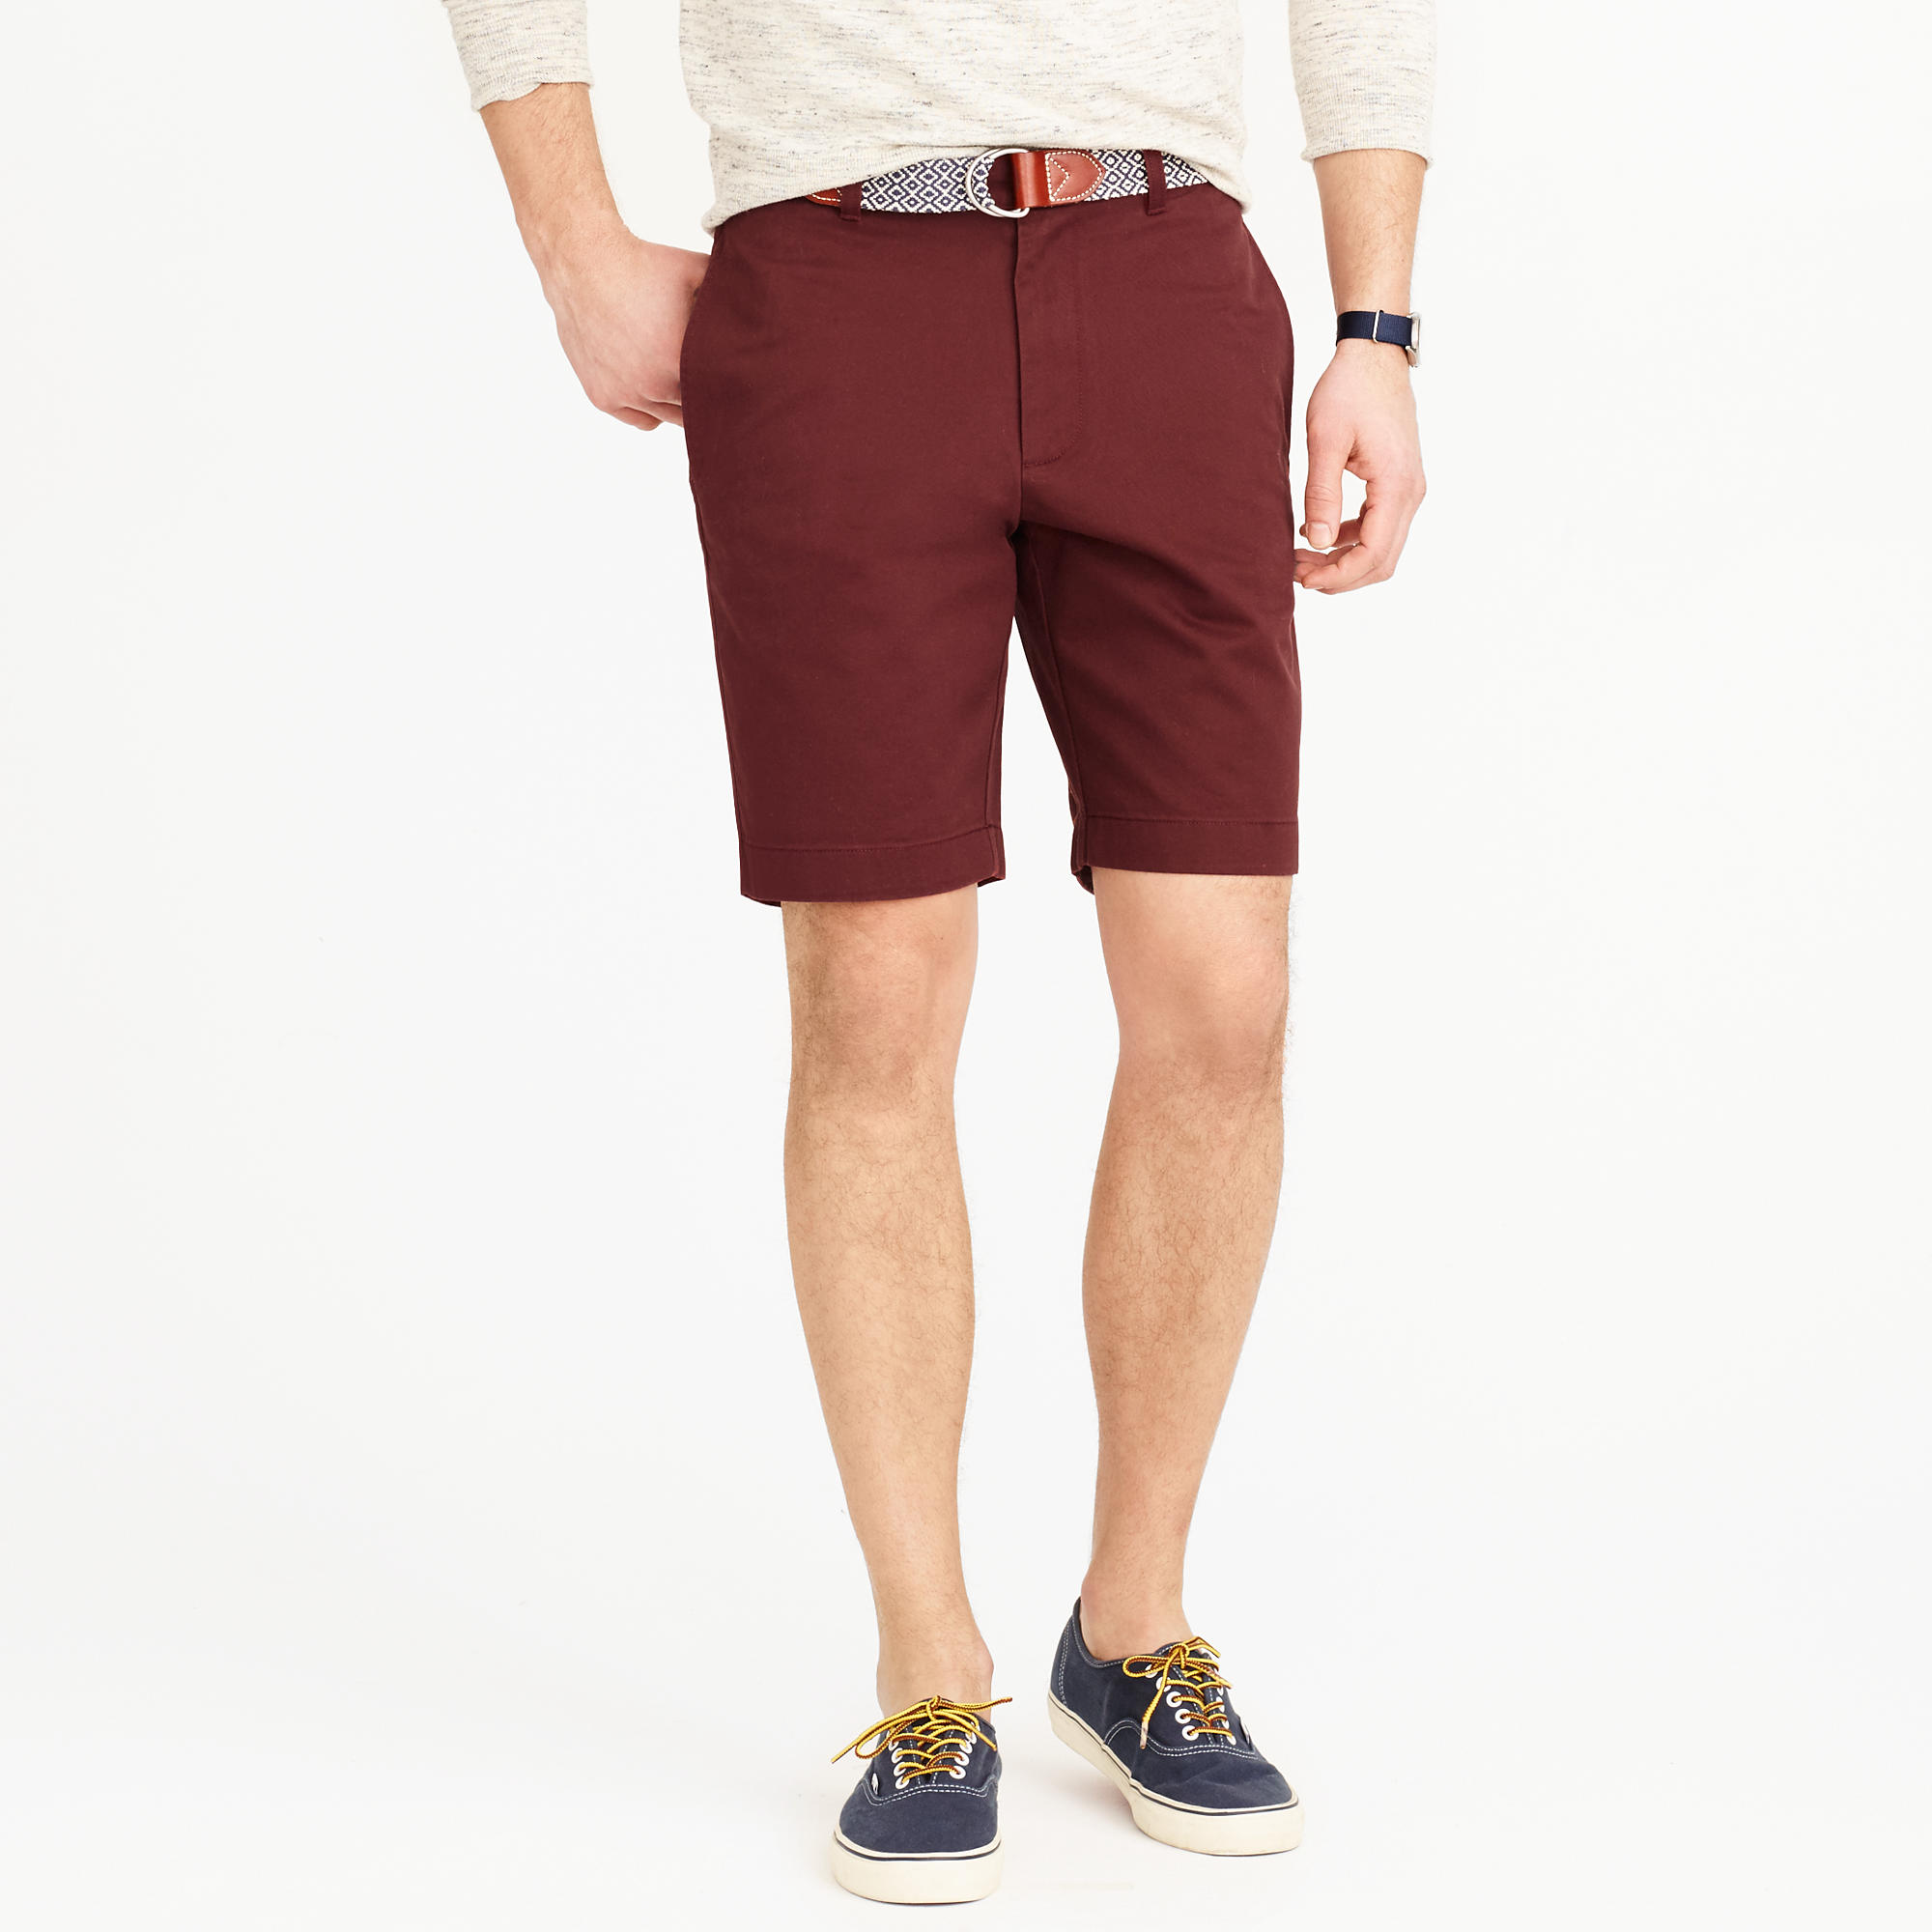 Get that manly look with mens chino shorts